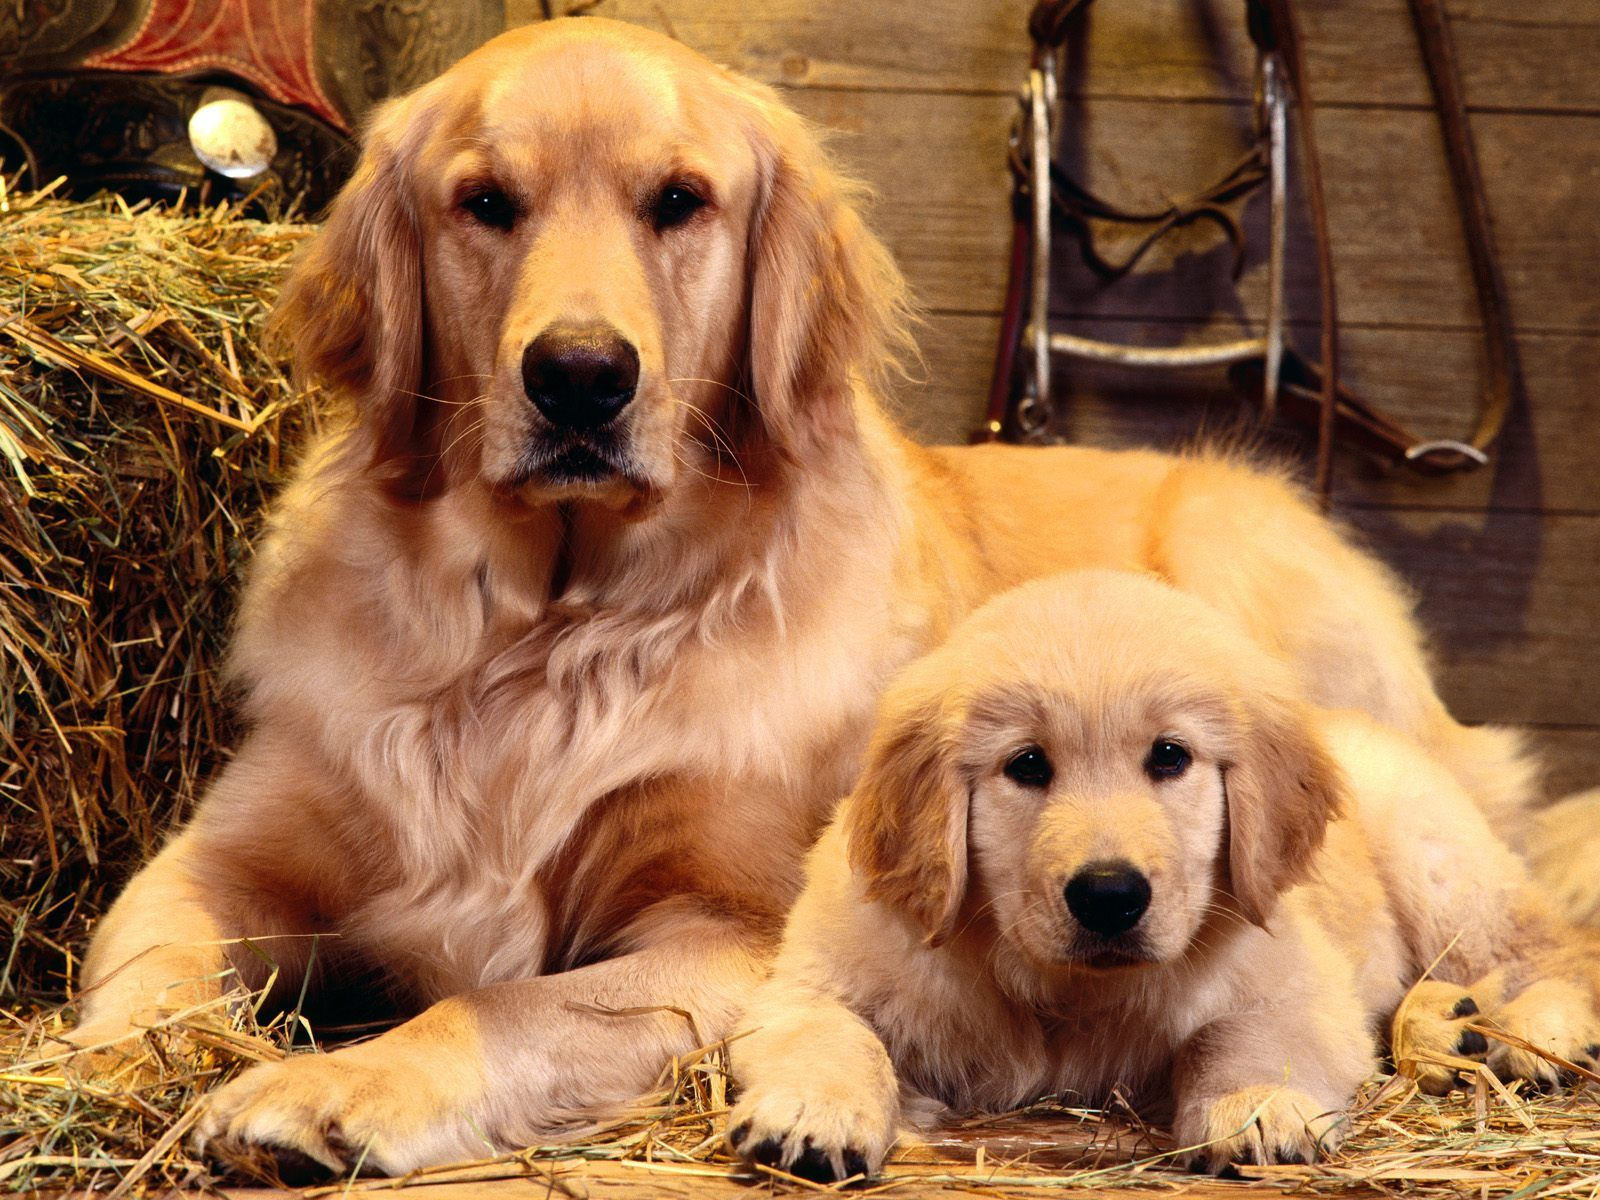 Dog Hd Wallpaper Google Search Dogs Golden Retriever Golden